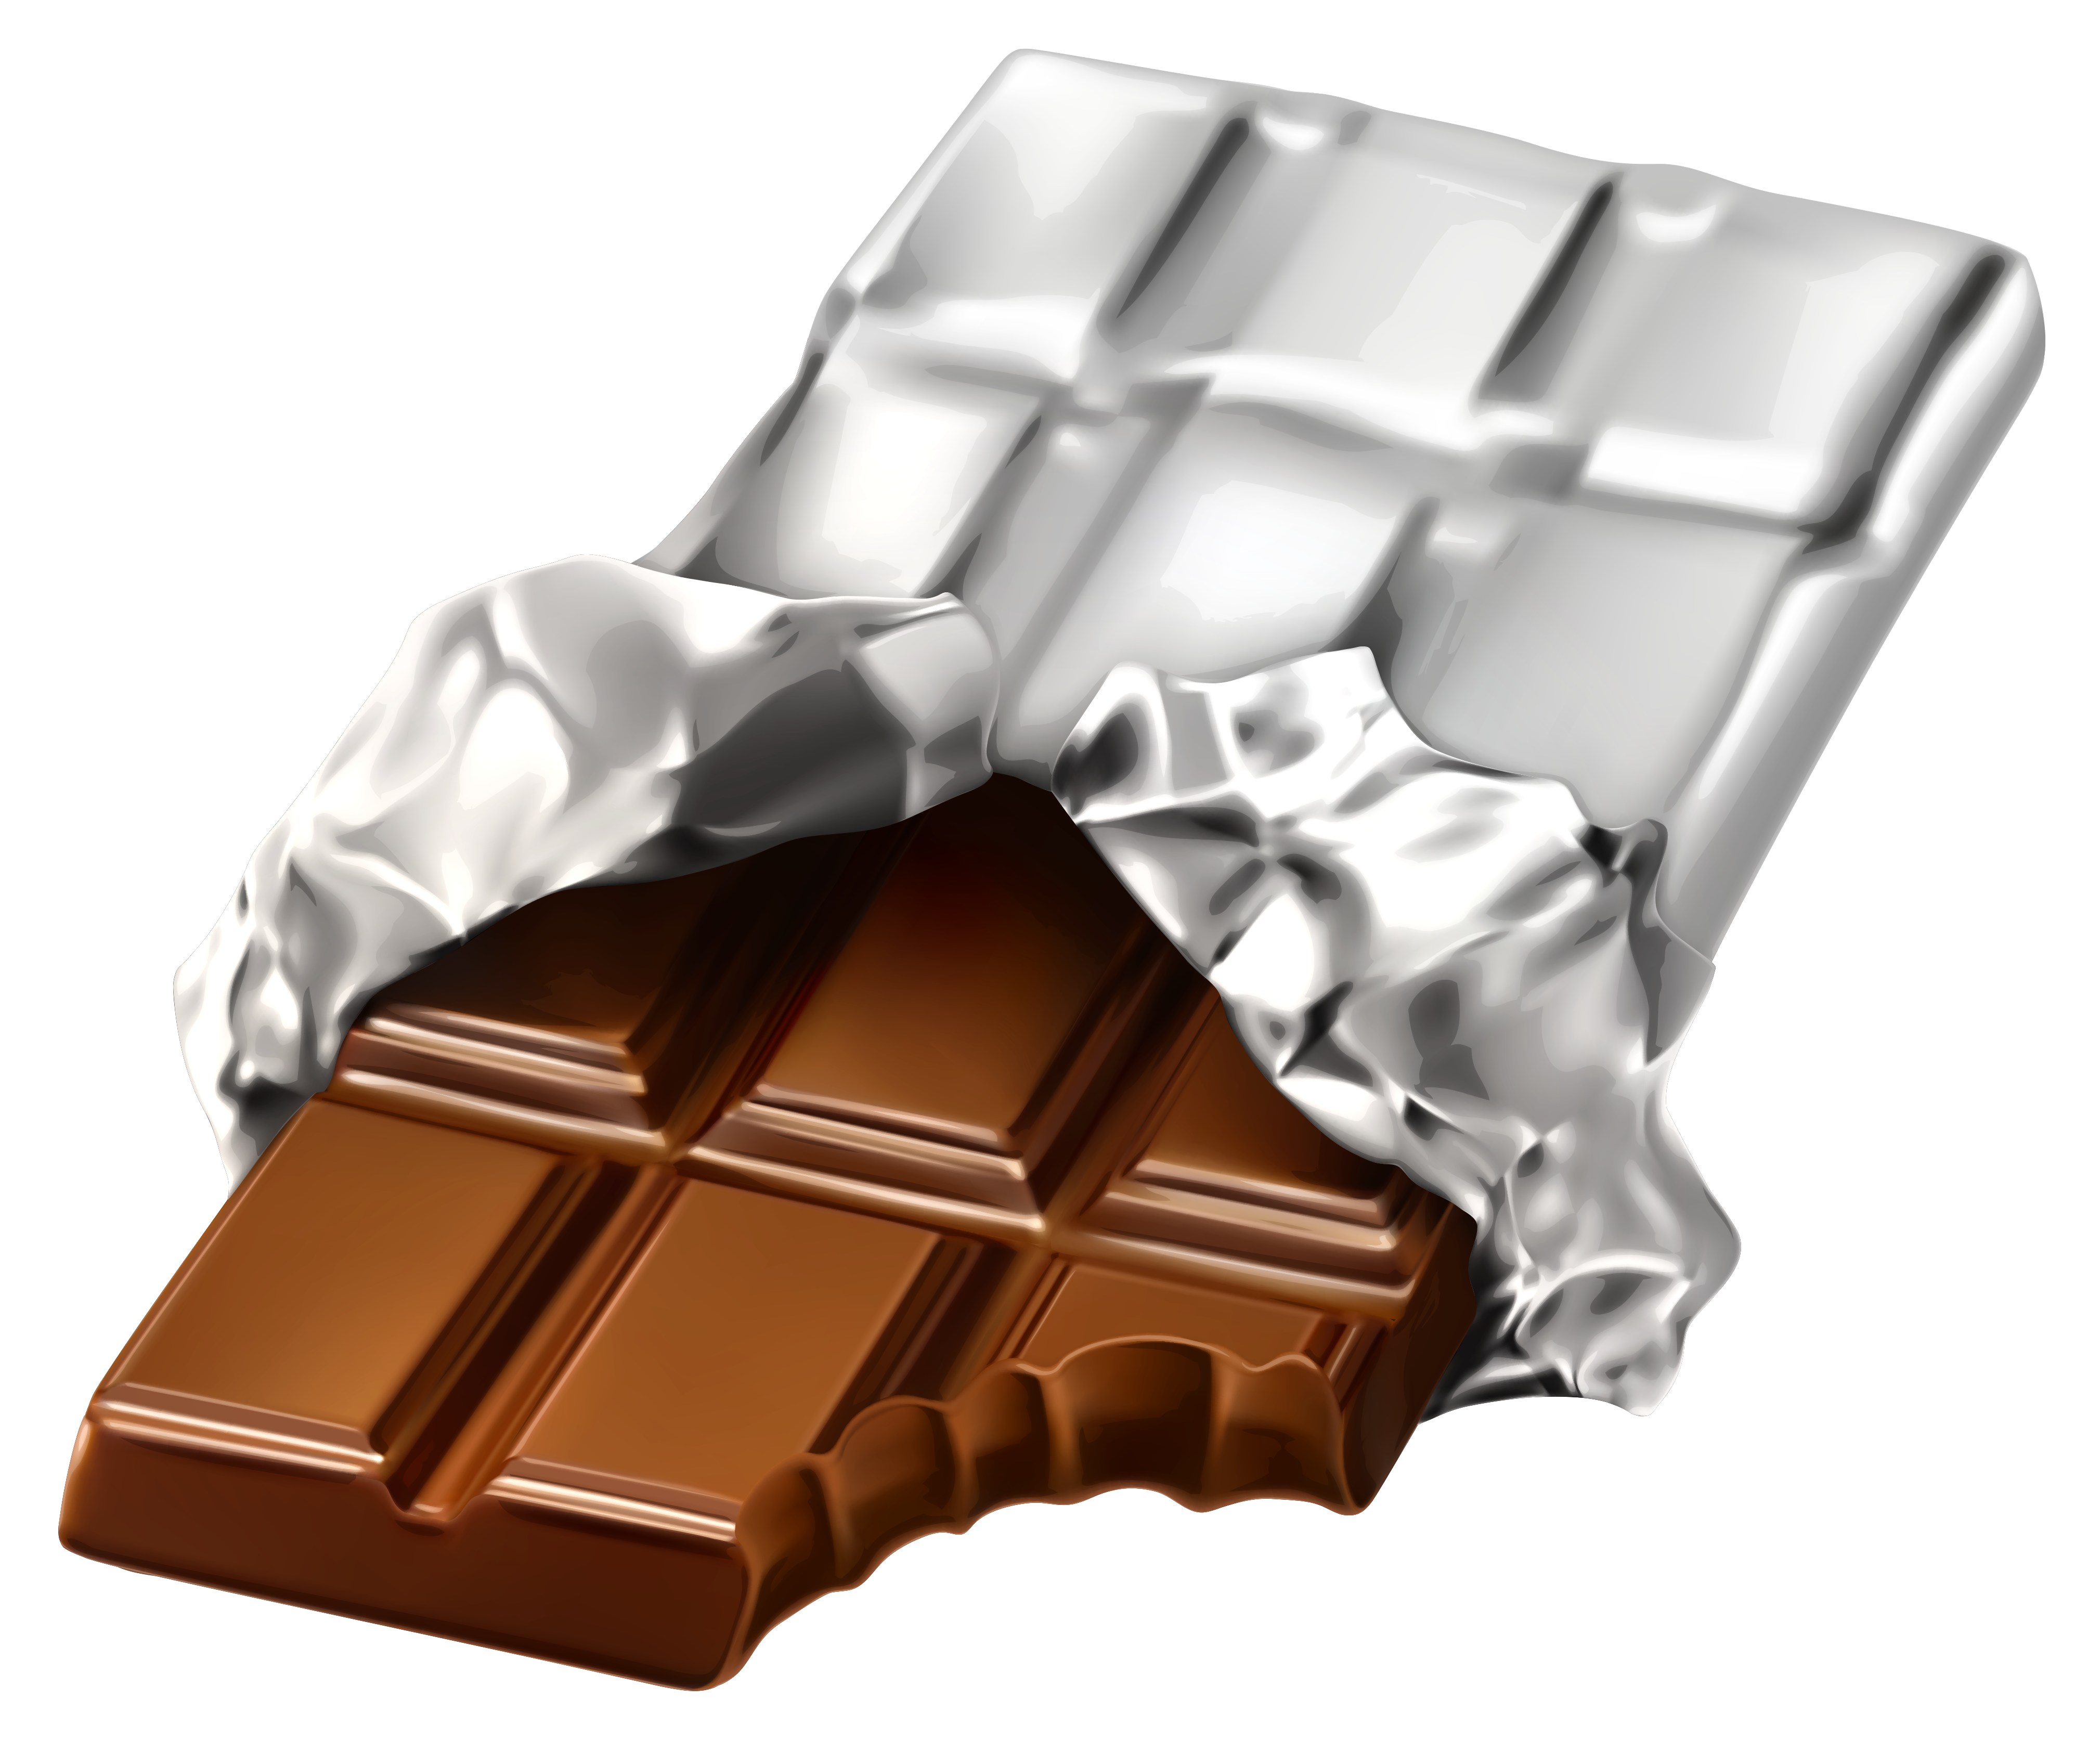 chocolate clipart png - Clipground